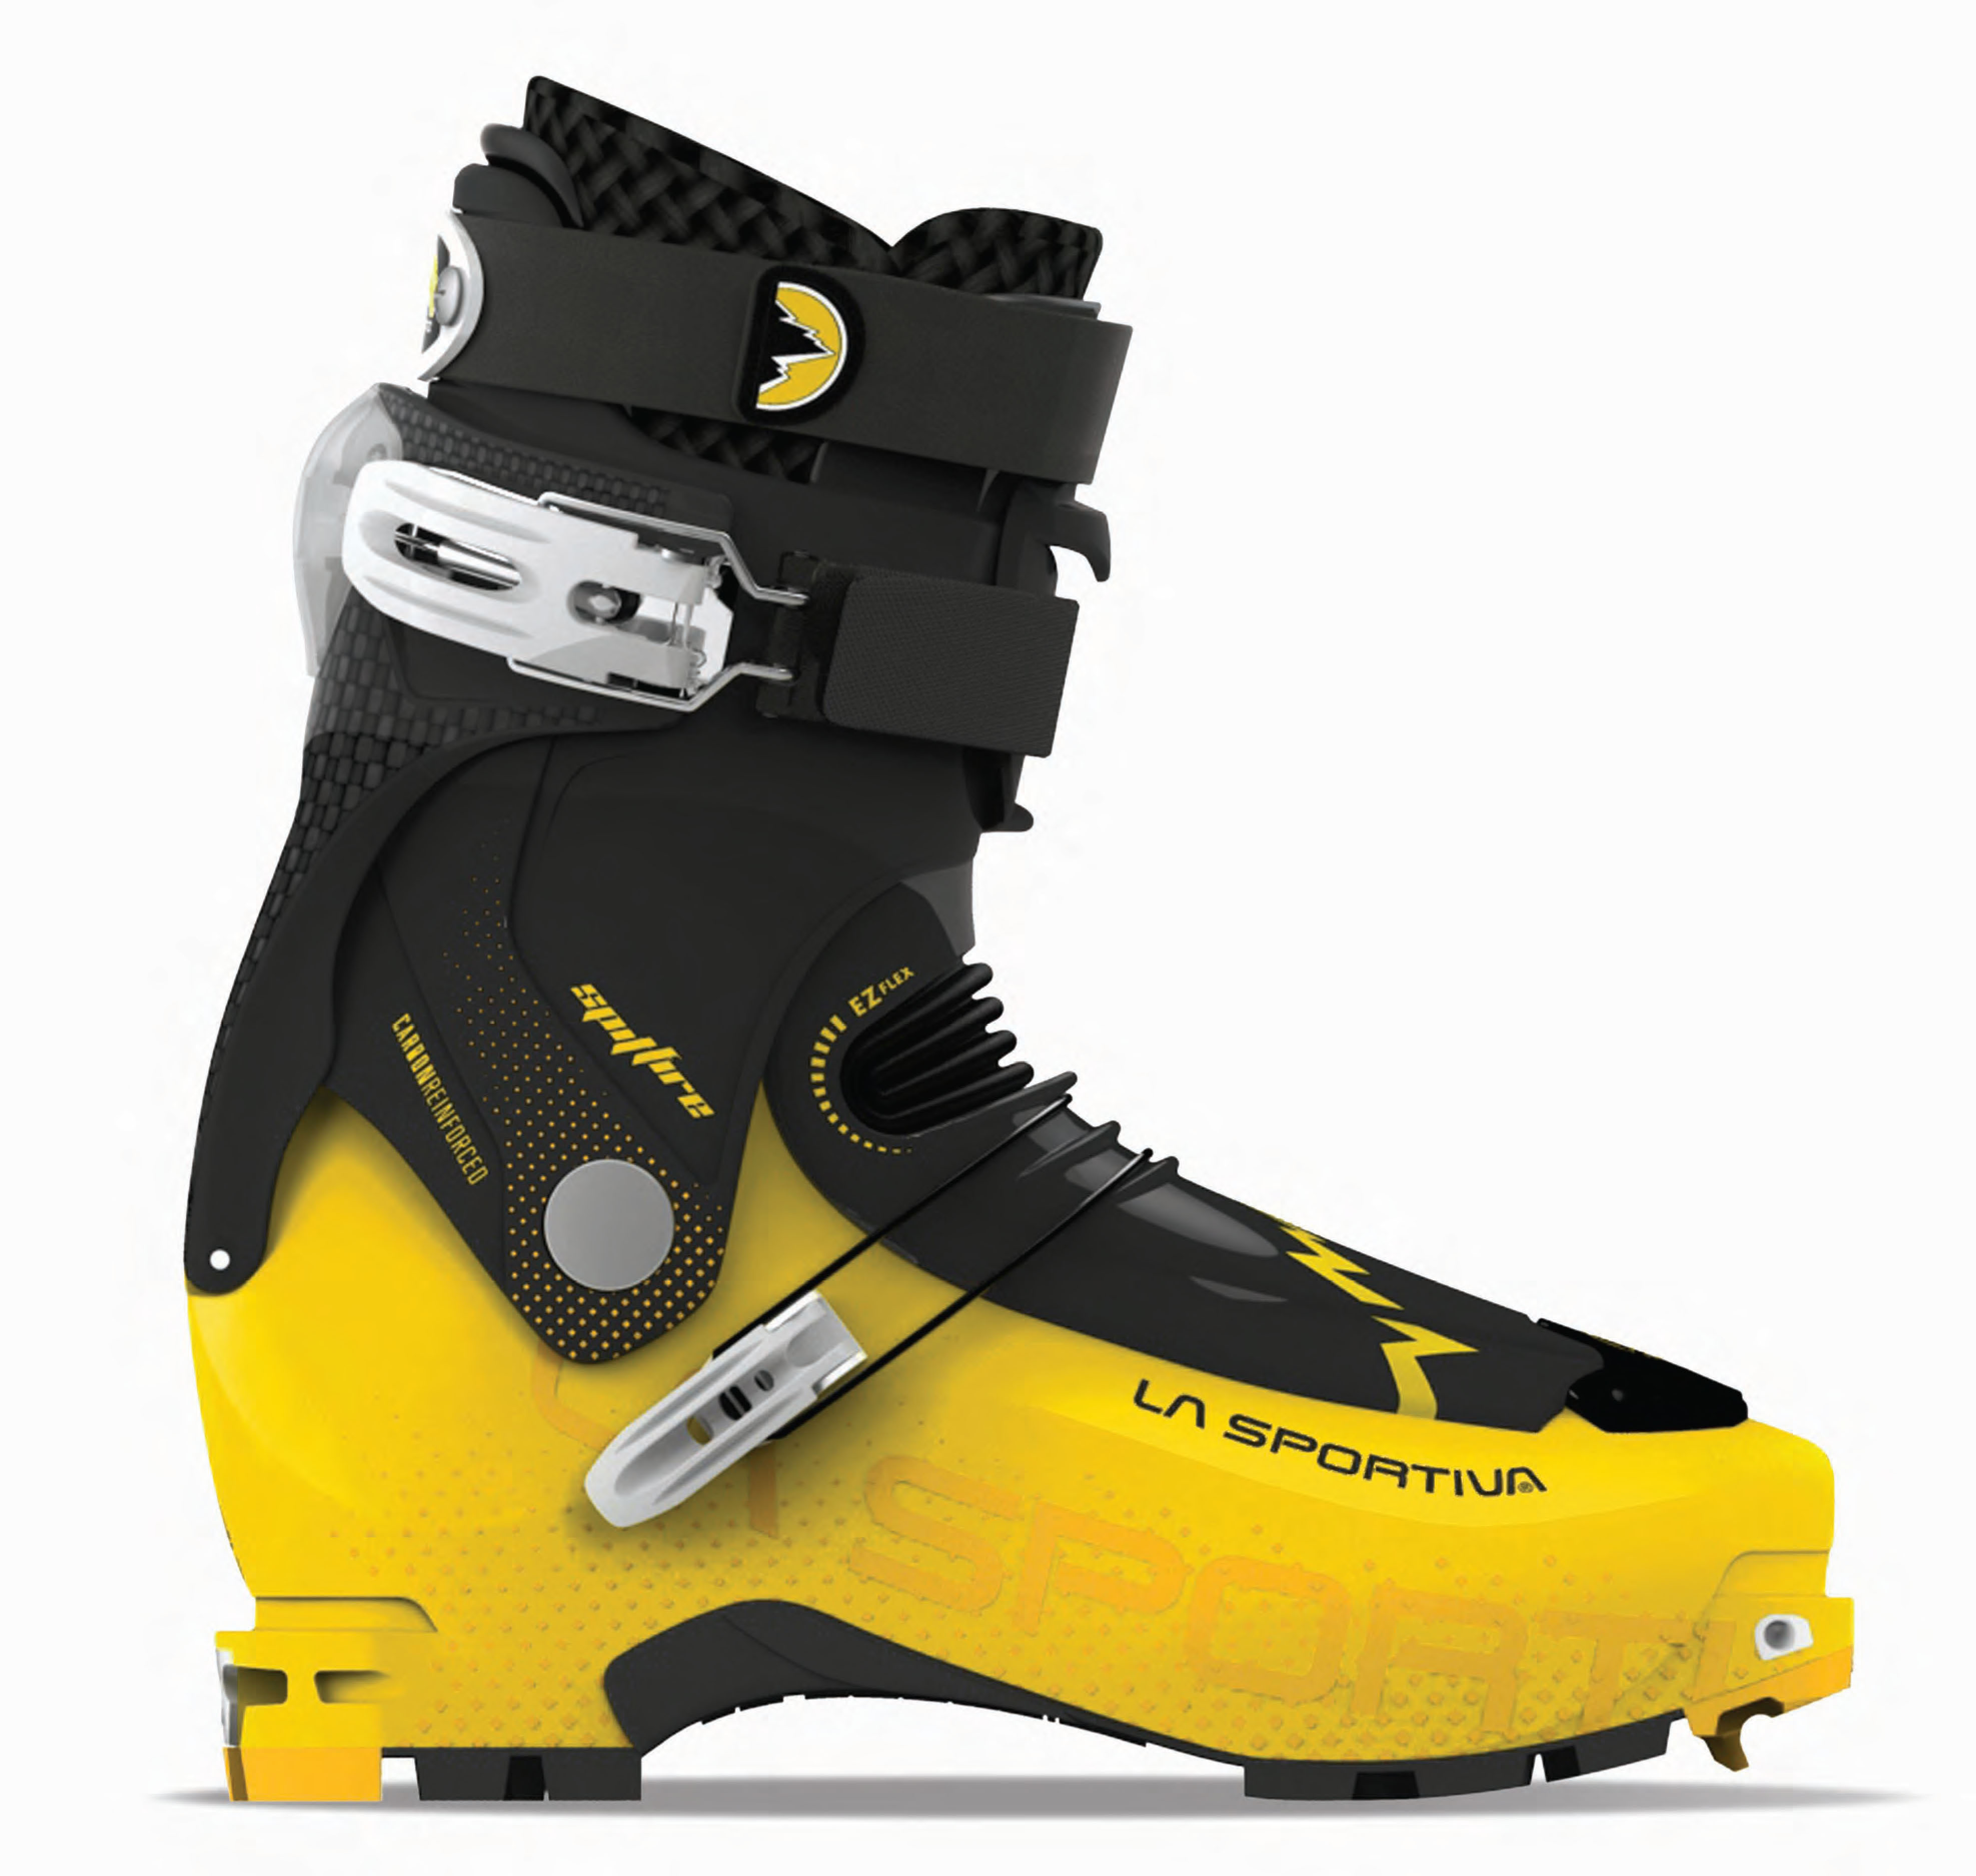 The Spitfire is a powerhouse 120-Flex boot that represents a crossover between the lightweight demands of randonee racing and the performance requirements of freeride touring. Featuring a Grilamidr shell and a unique Vertebra TechnologyT, the Spitfire utilizes a Carbon Reinforced Polymer cuff to improve stiffness and downhill performance.